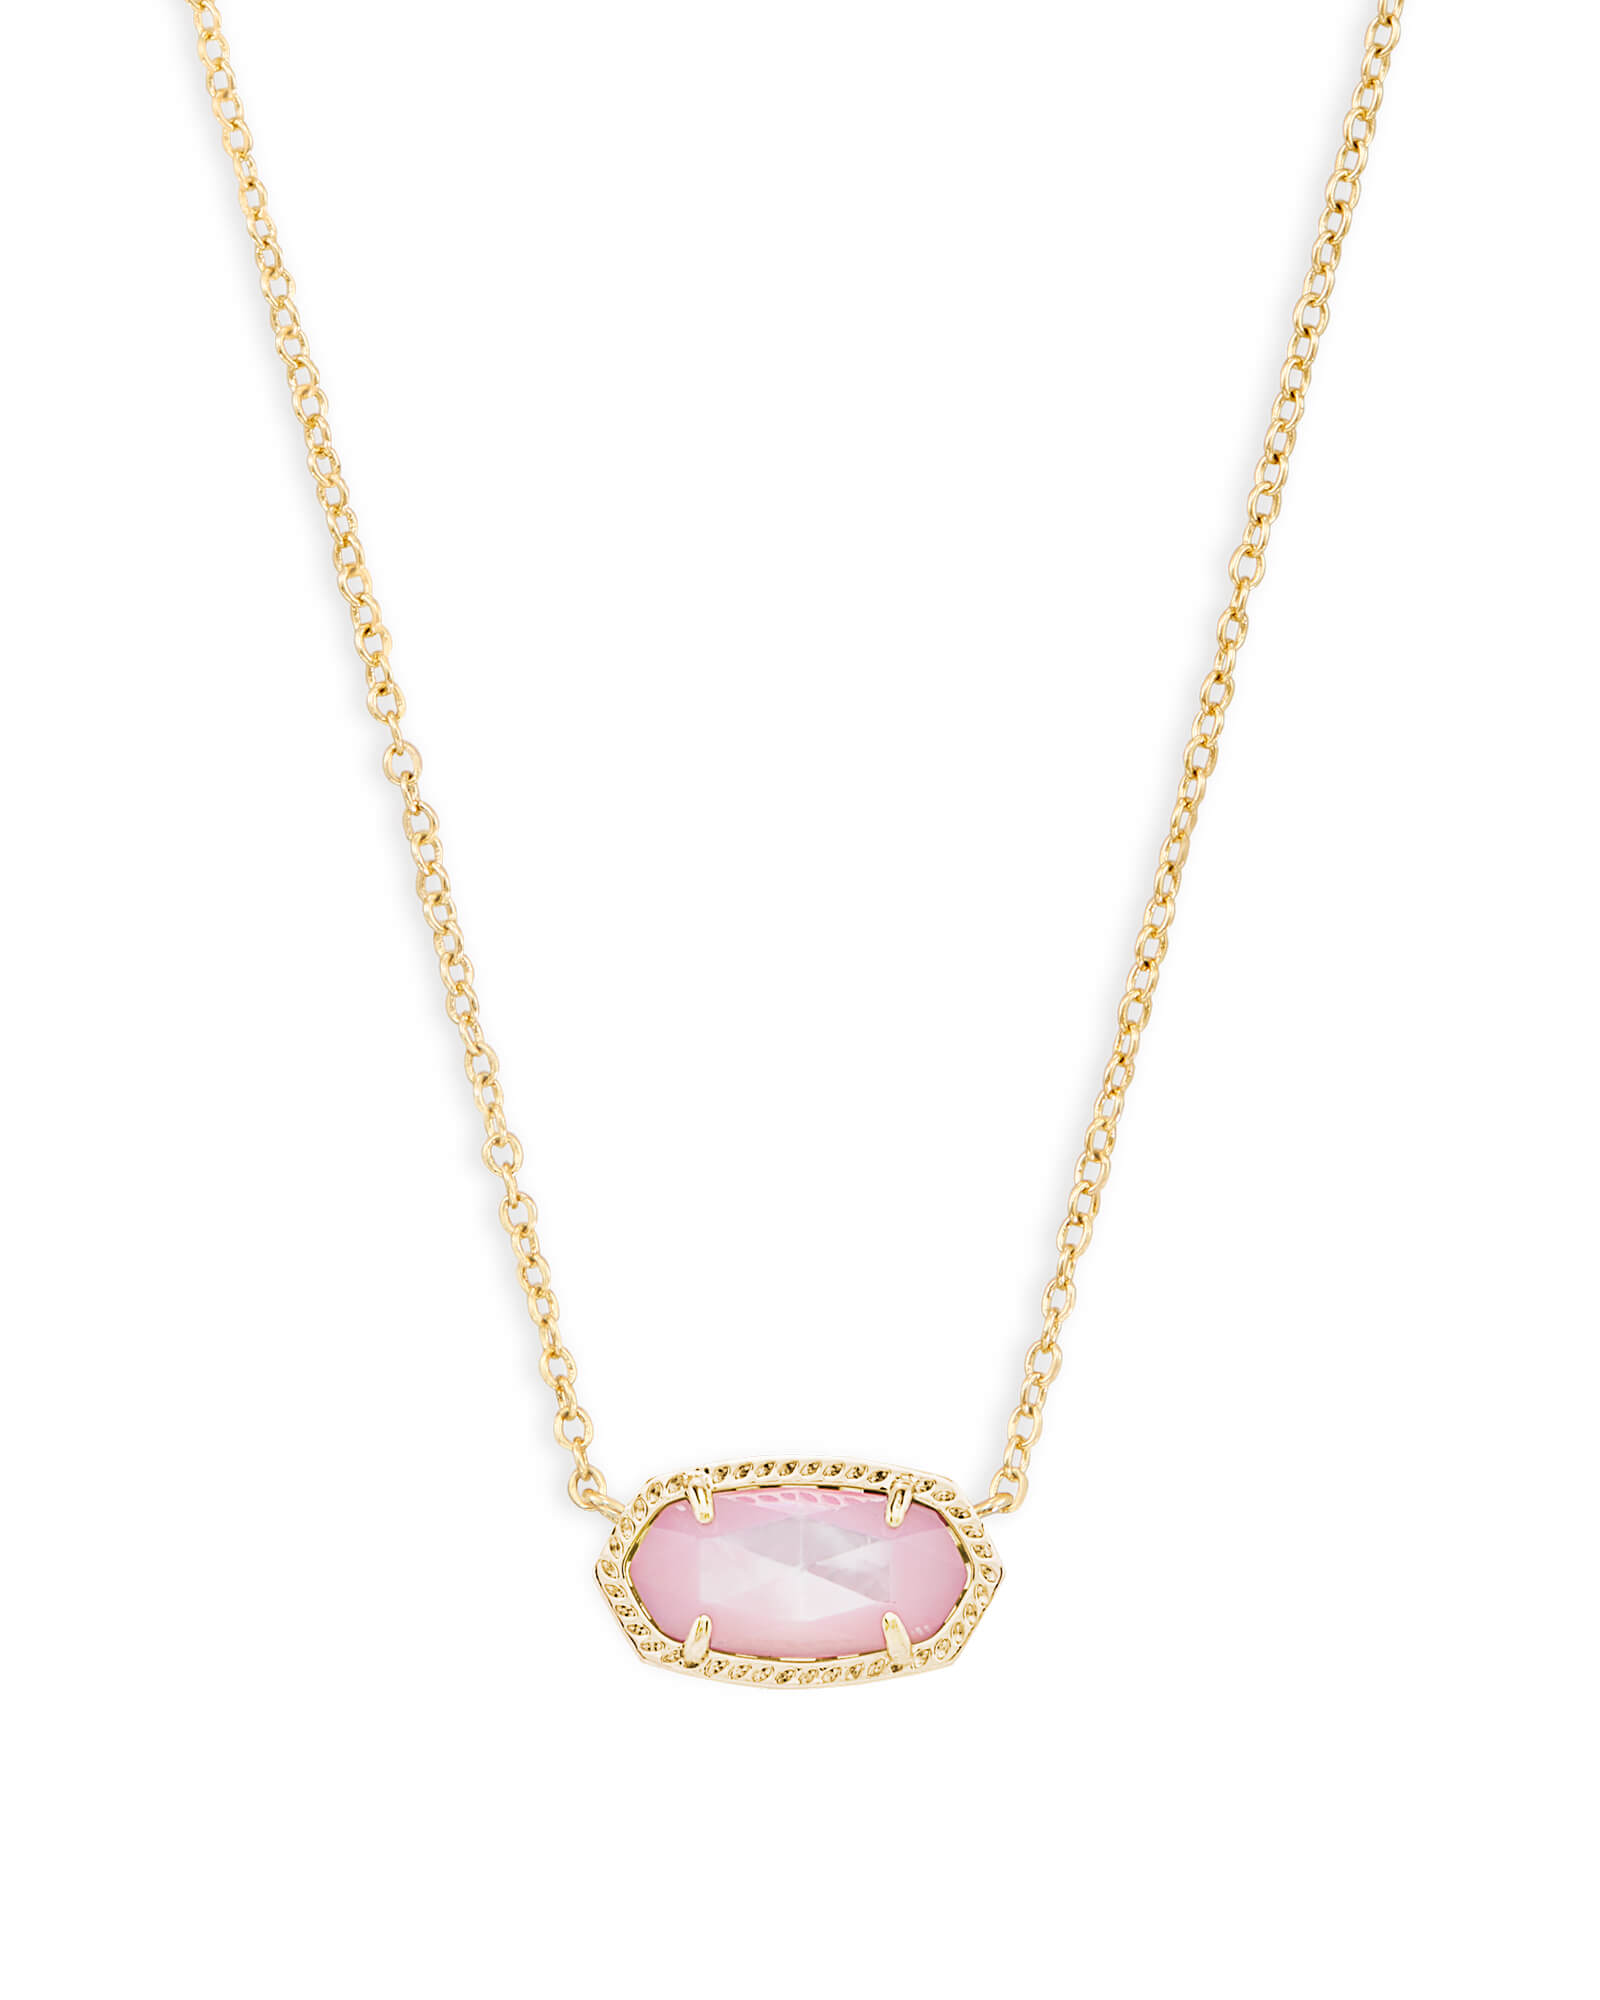 Elisa pendant necklace in blush pearl kendra scott elisa pendant necklace in blush pearl aloadofball Gallery